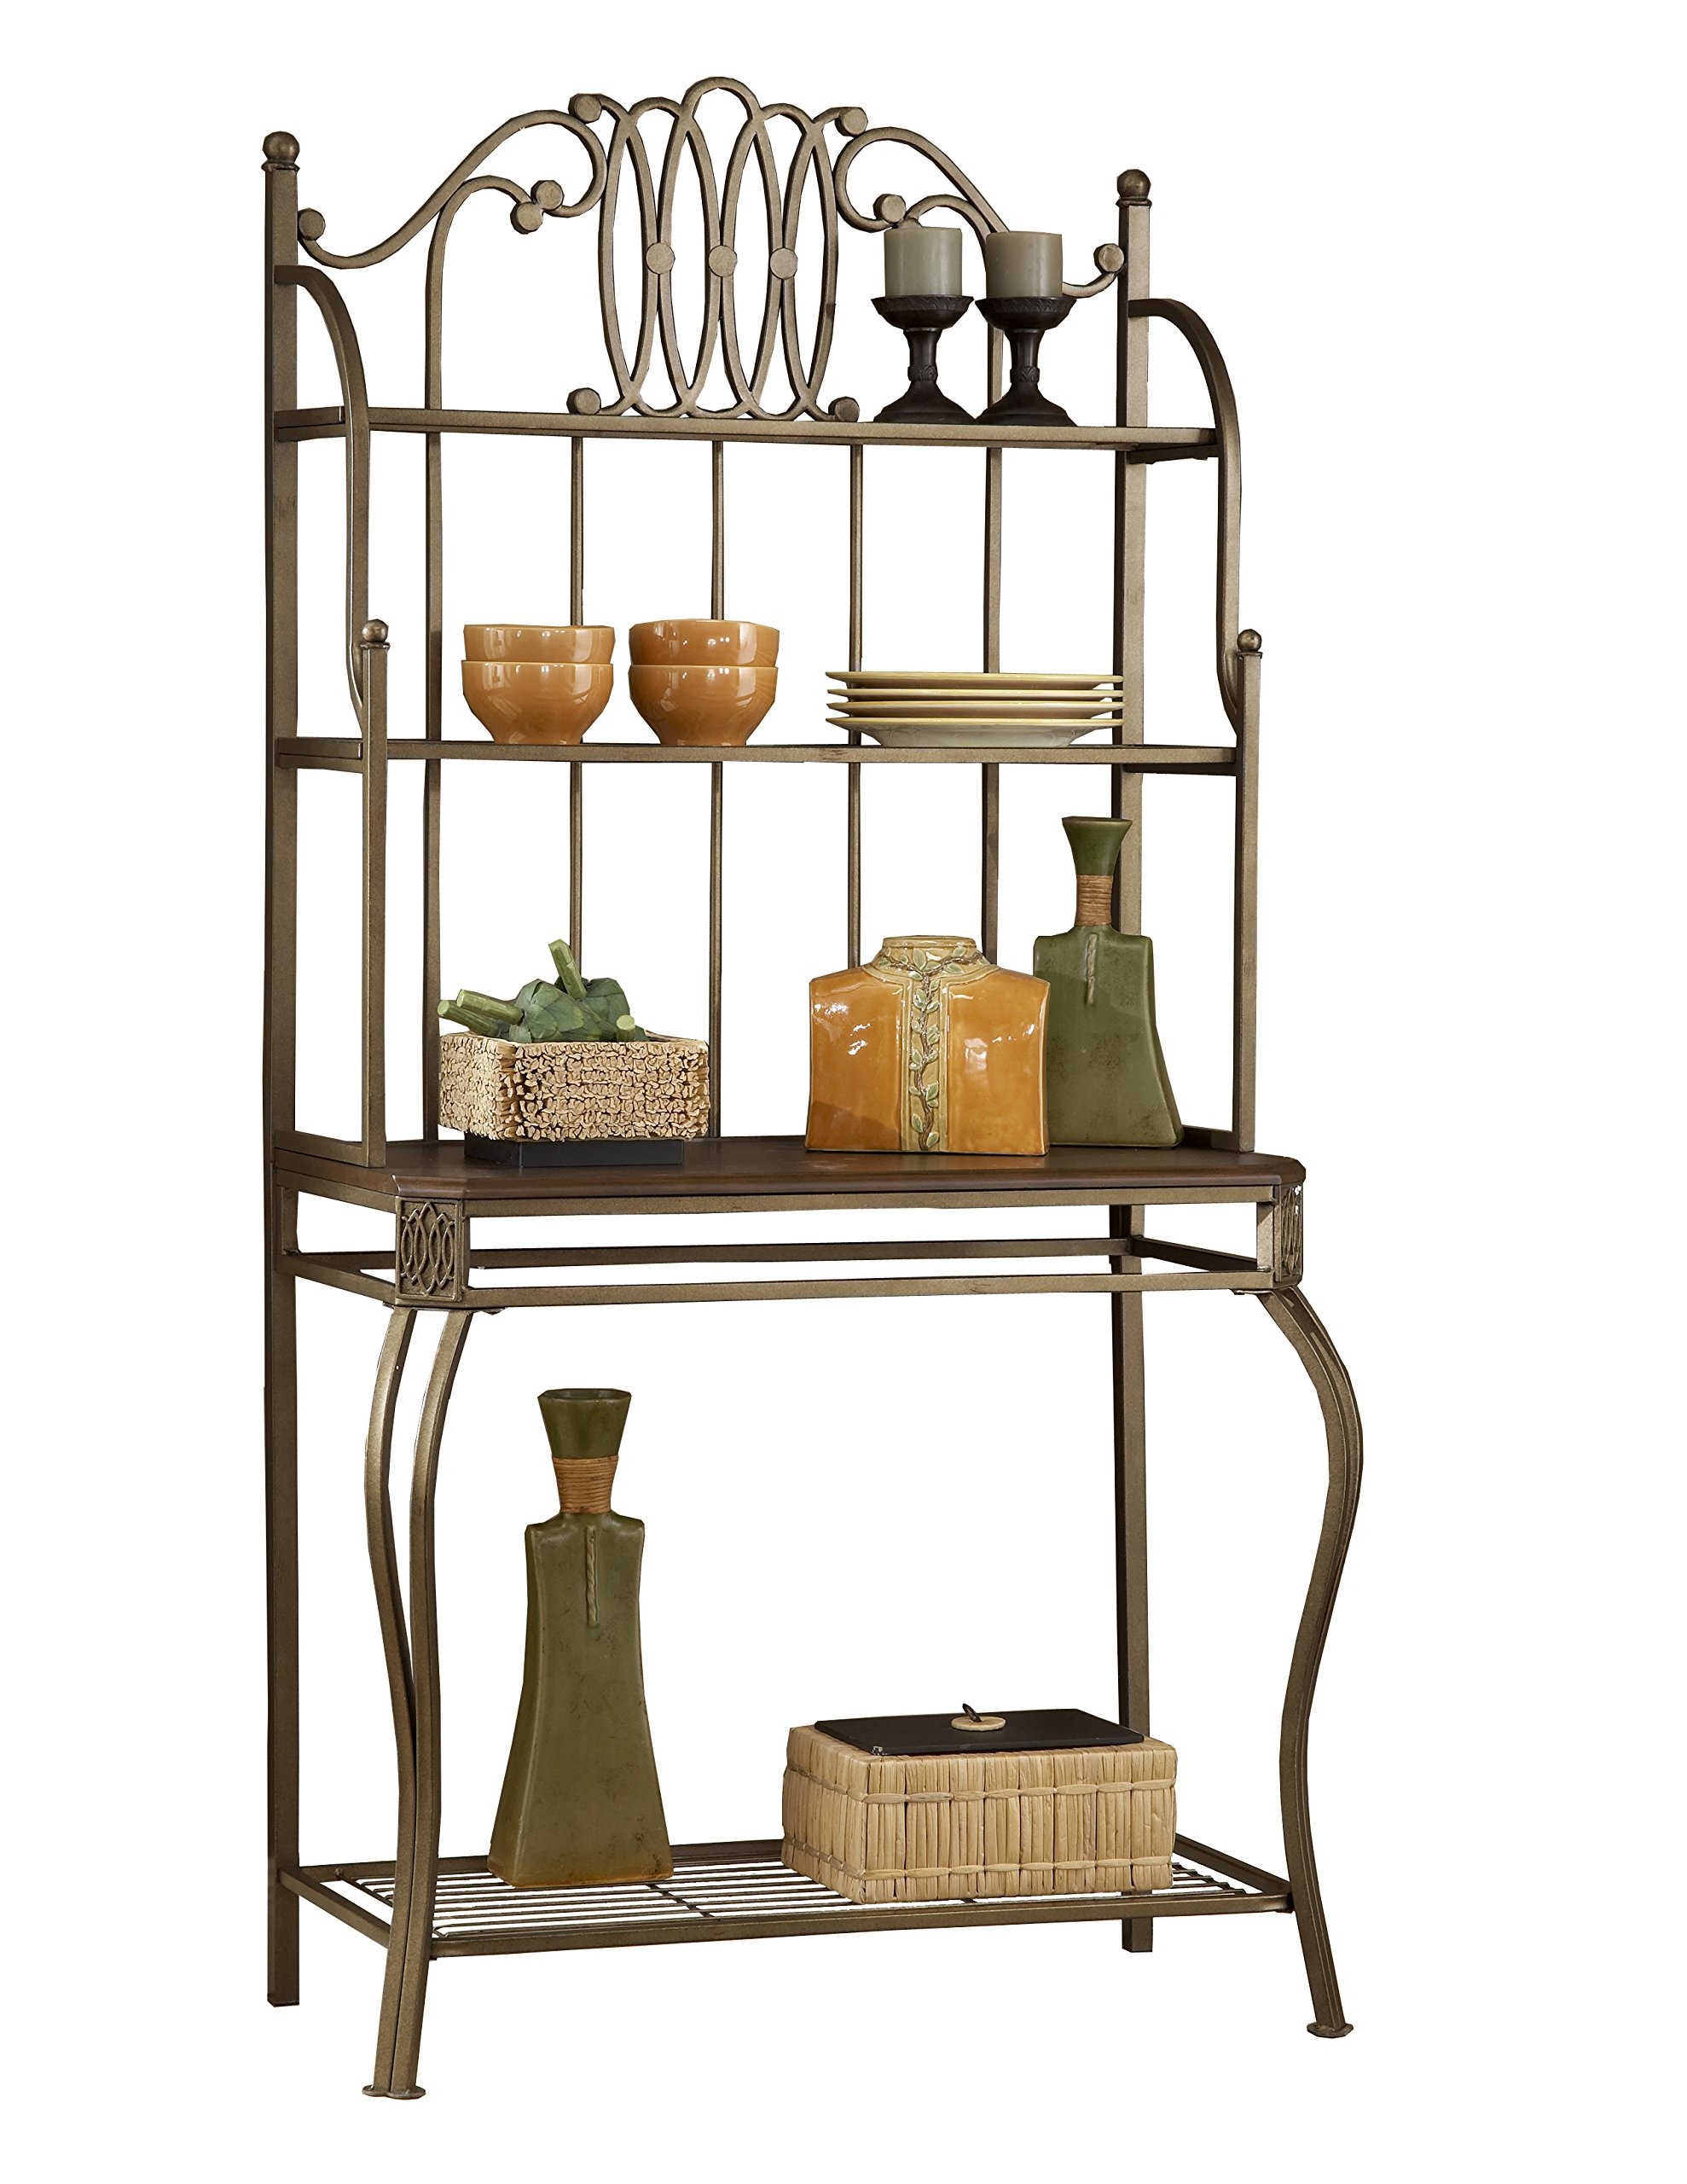 Hillsdale Furniture 41548H Montello Baker's Rack, Old Steel by Hillsdale Furniture